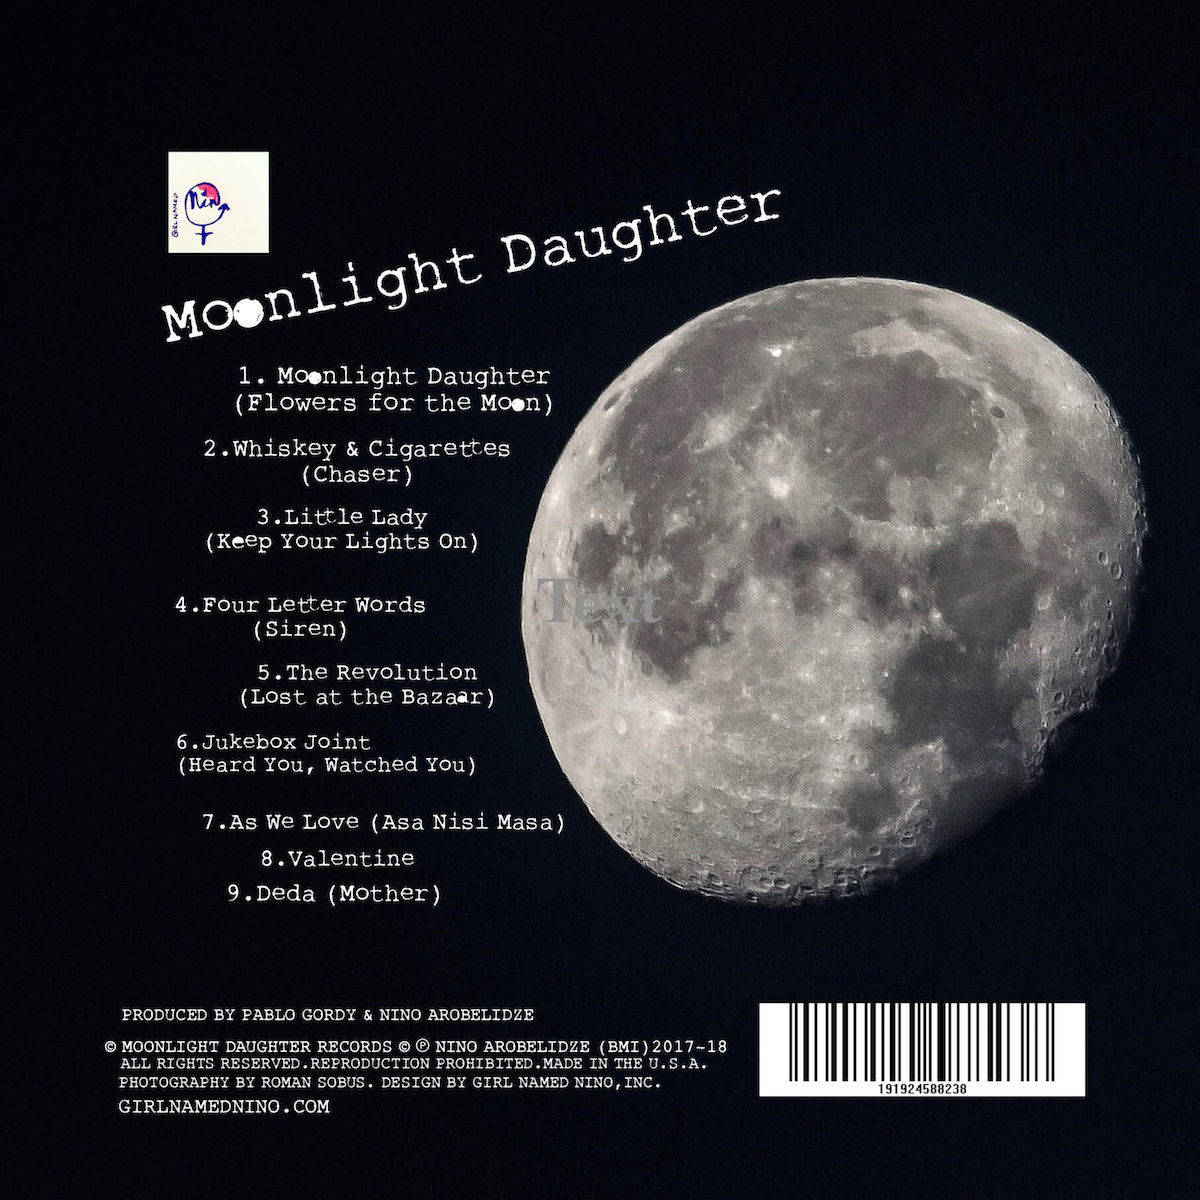 This Is Moonlight Daughter My Third Full Length Studio Aland My First Release As Girl Named Nino It Was Written And Recorded Over The Period Of